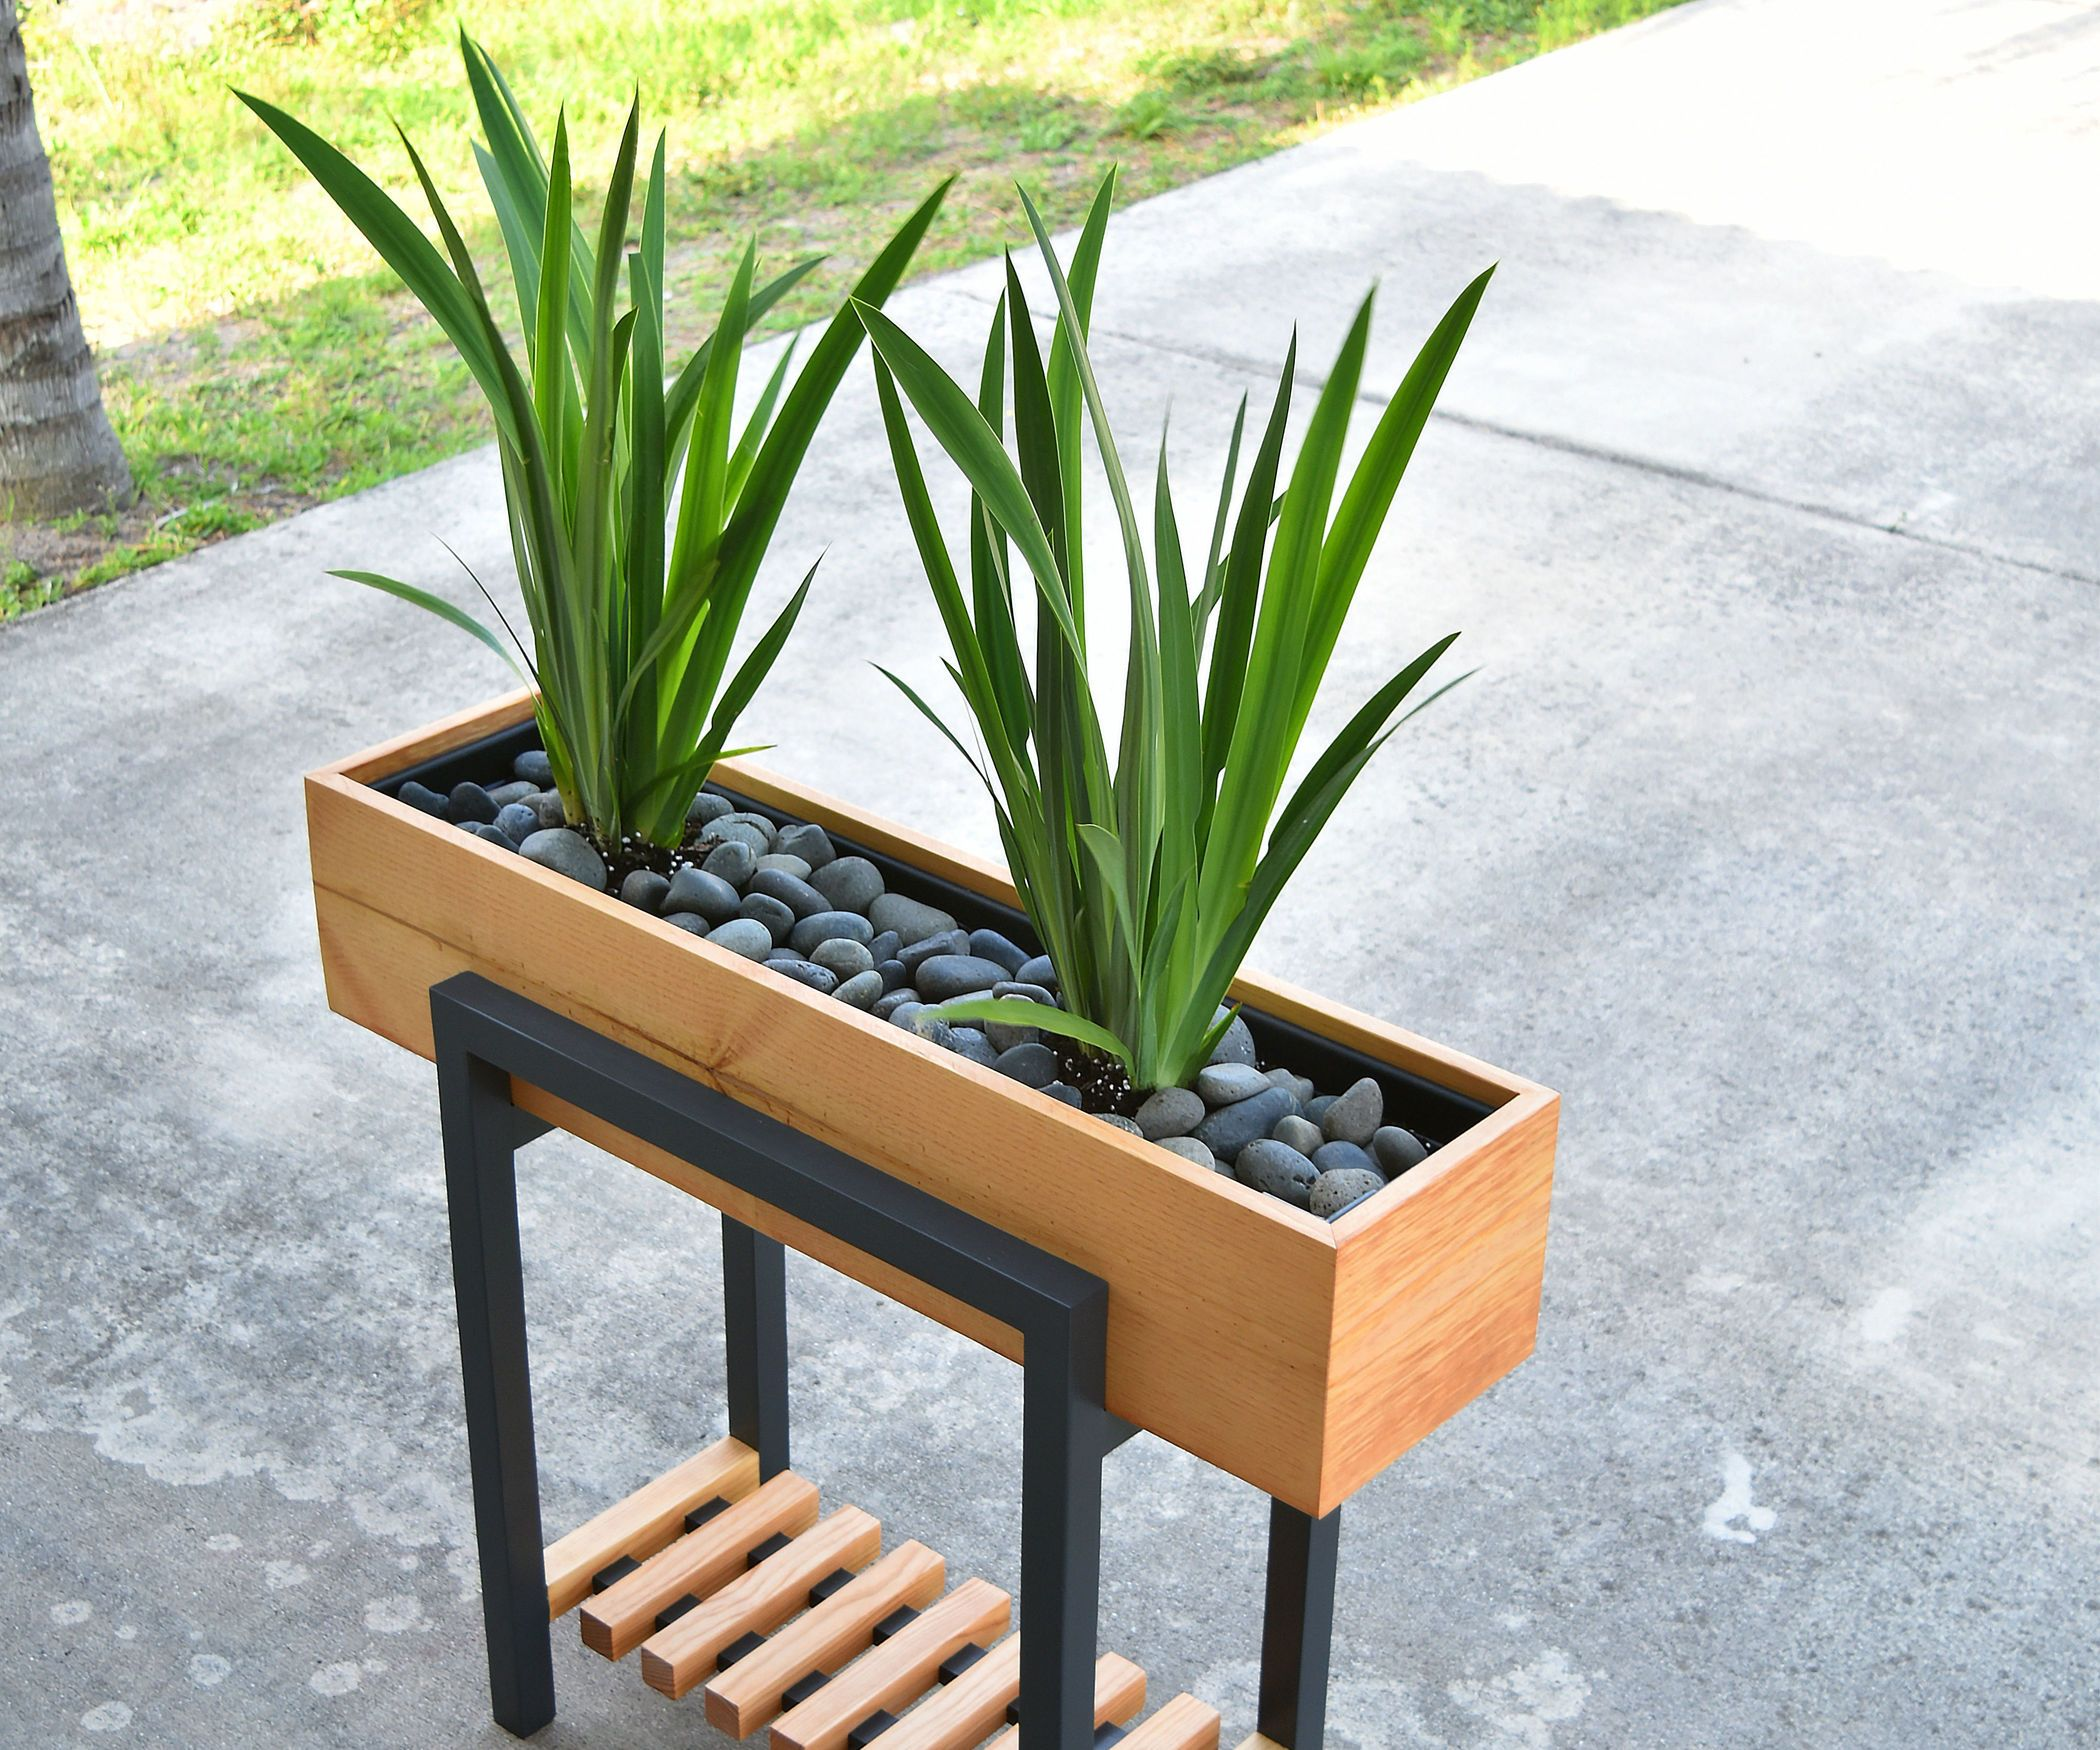 HOW TO MAKE a RAISED PLANTER BOX is part of House plants decor, Plant decor, Diy plants, Modern plant stand, Diy plant stand, Raised planter - HOW TO MAKE a RAISED PLANTER BOX I have made a few planters, but this is by far my favorite one This could be made for interior or exterior  Since this was made for indoors, I used pond liner and a plastic planter box  I used pine lumber, so I didn't want the lumber to have direc